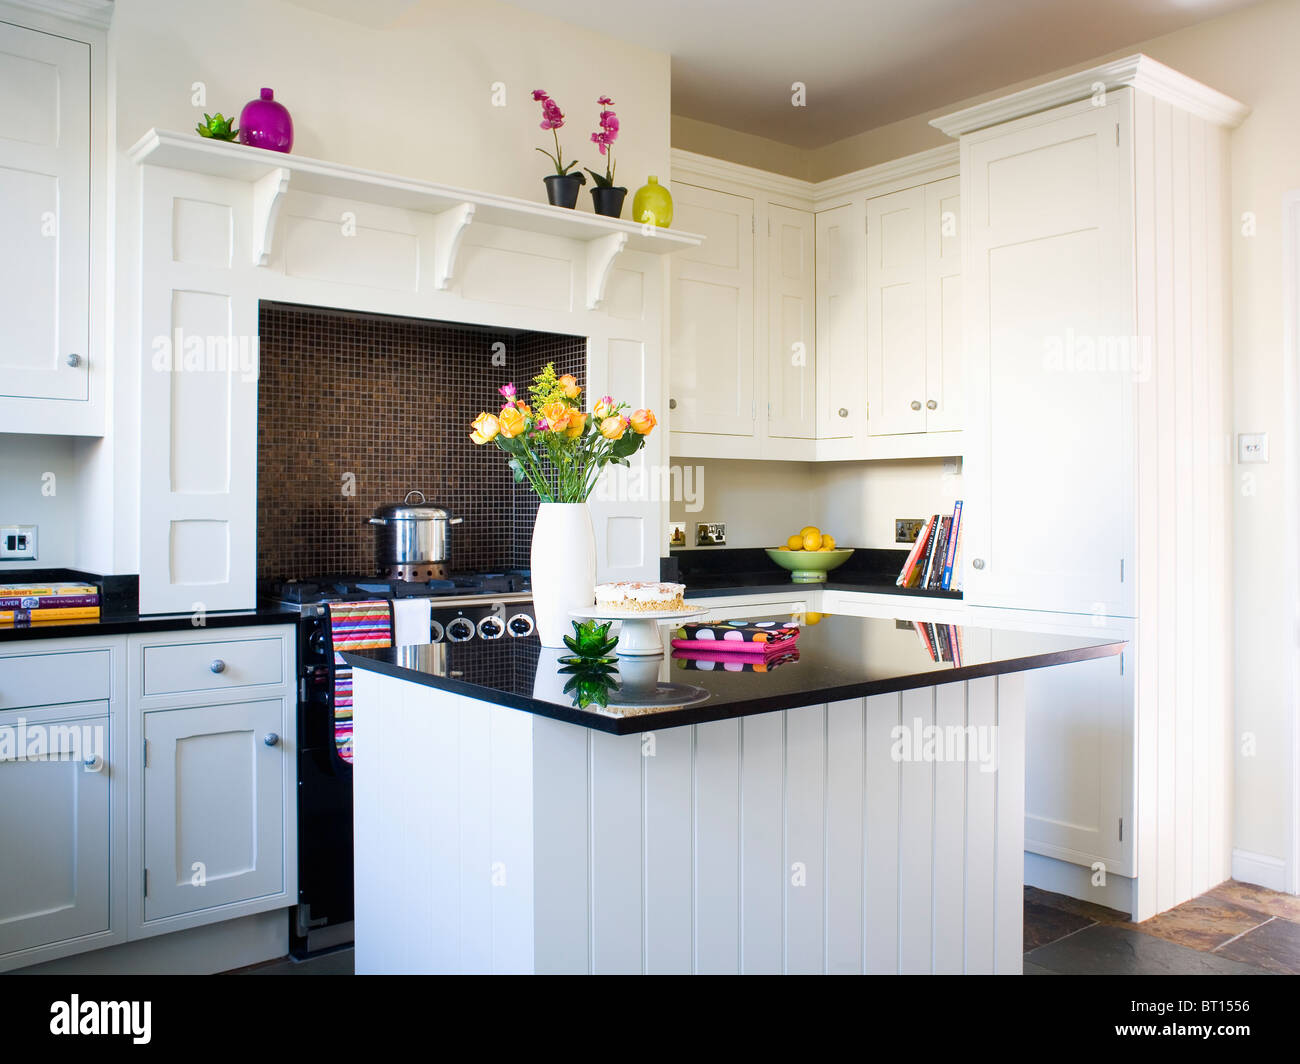 Island Unit With Black Granite Worktop In Traditional White Kitchen Stock Photo Alamy